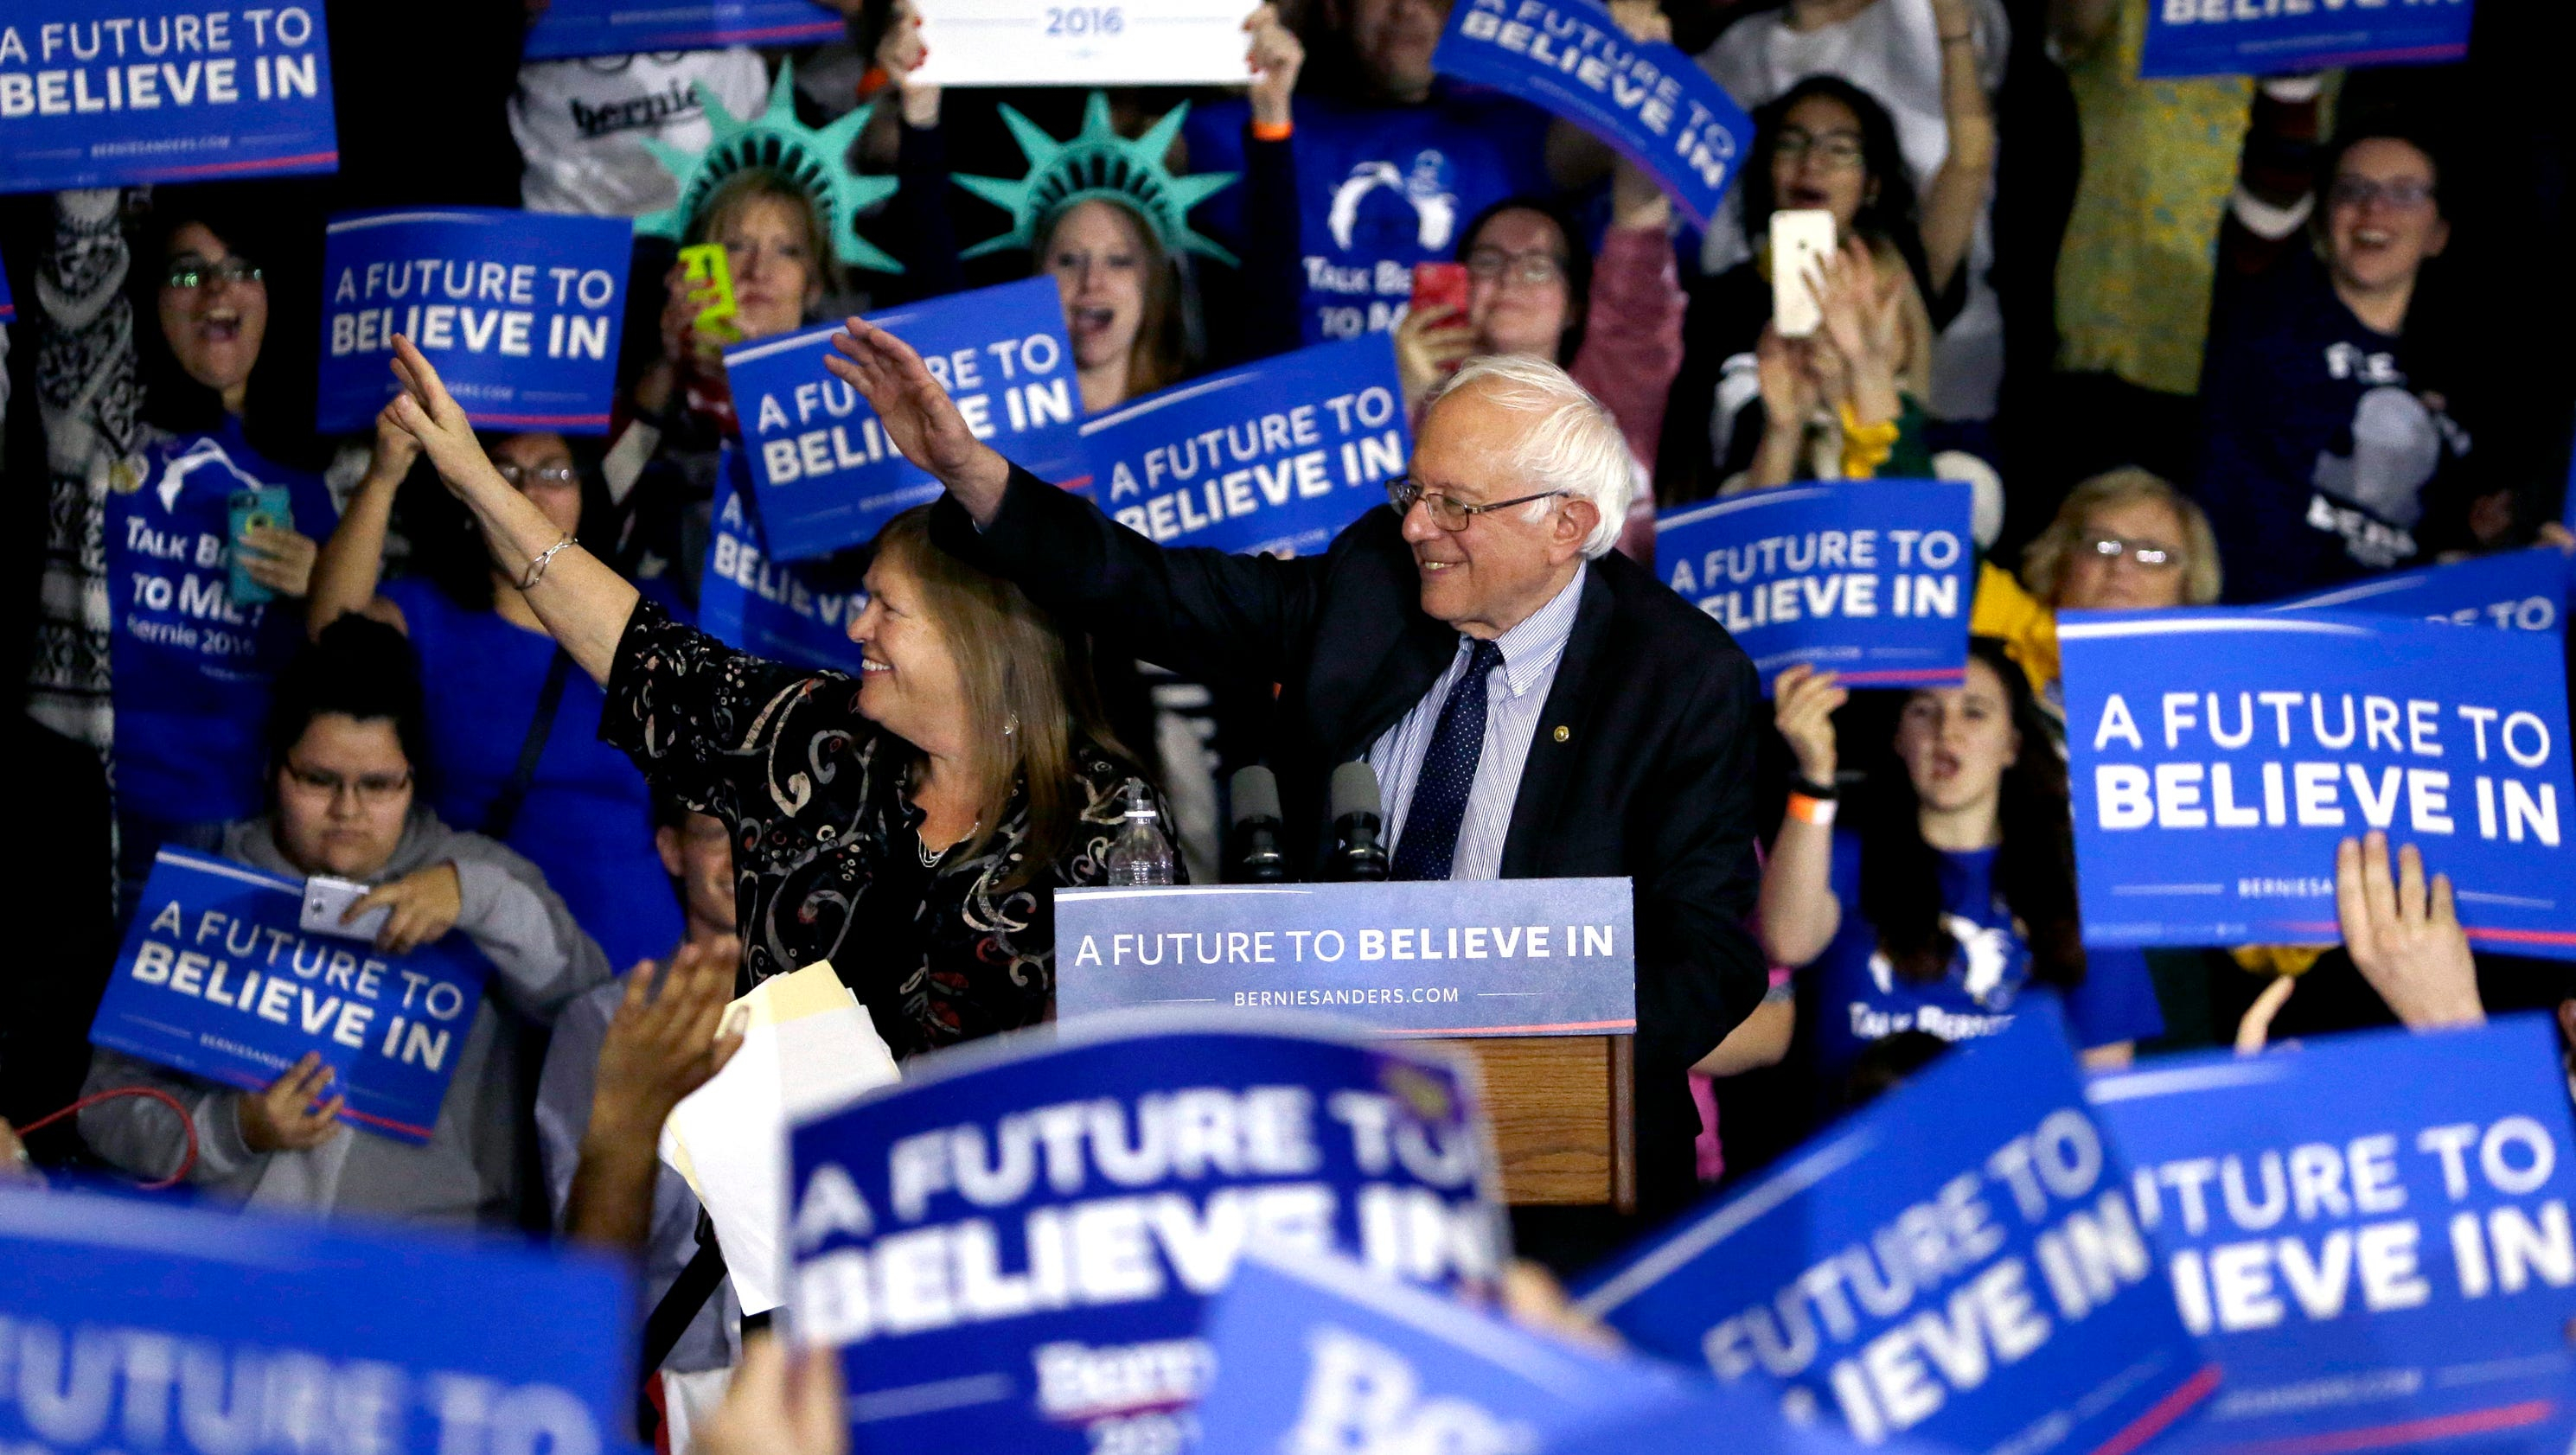 Bernie Sanders is fading, but still has millions more votes than Ted Cruz - USA TODAY